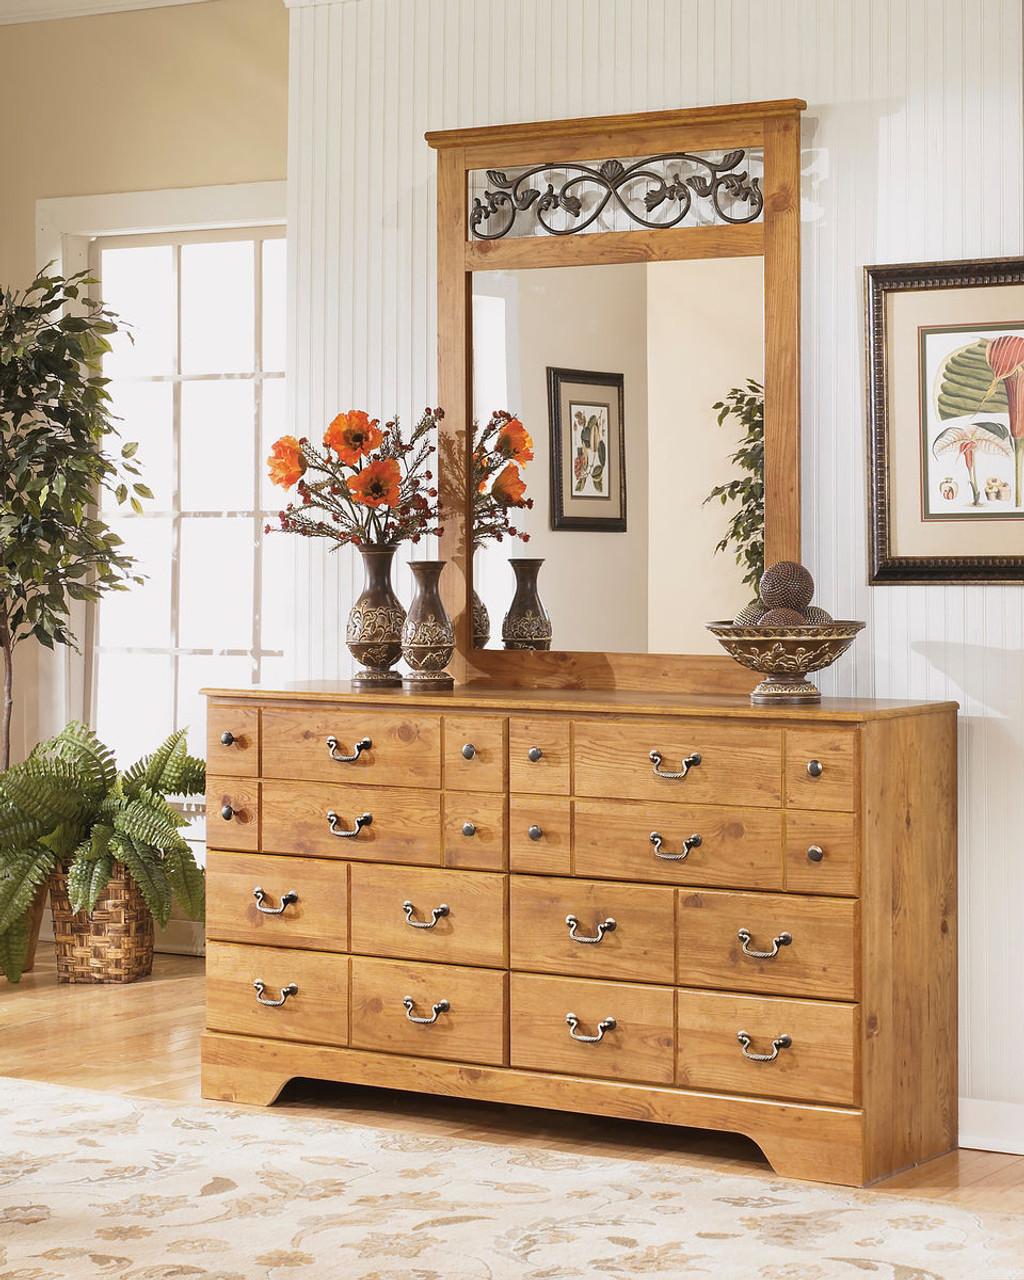 The Bittersweet Light Brown Dresser Mirror Available At Gibson Mcdonald Serving Waycross Ga And Surrounding Areas